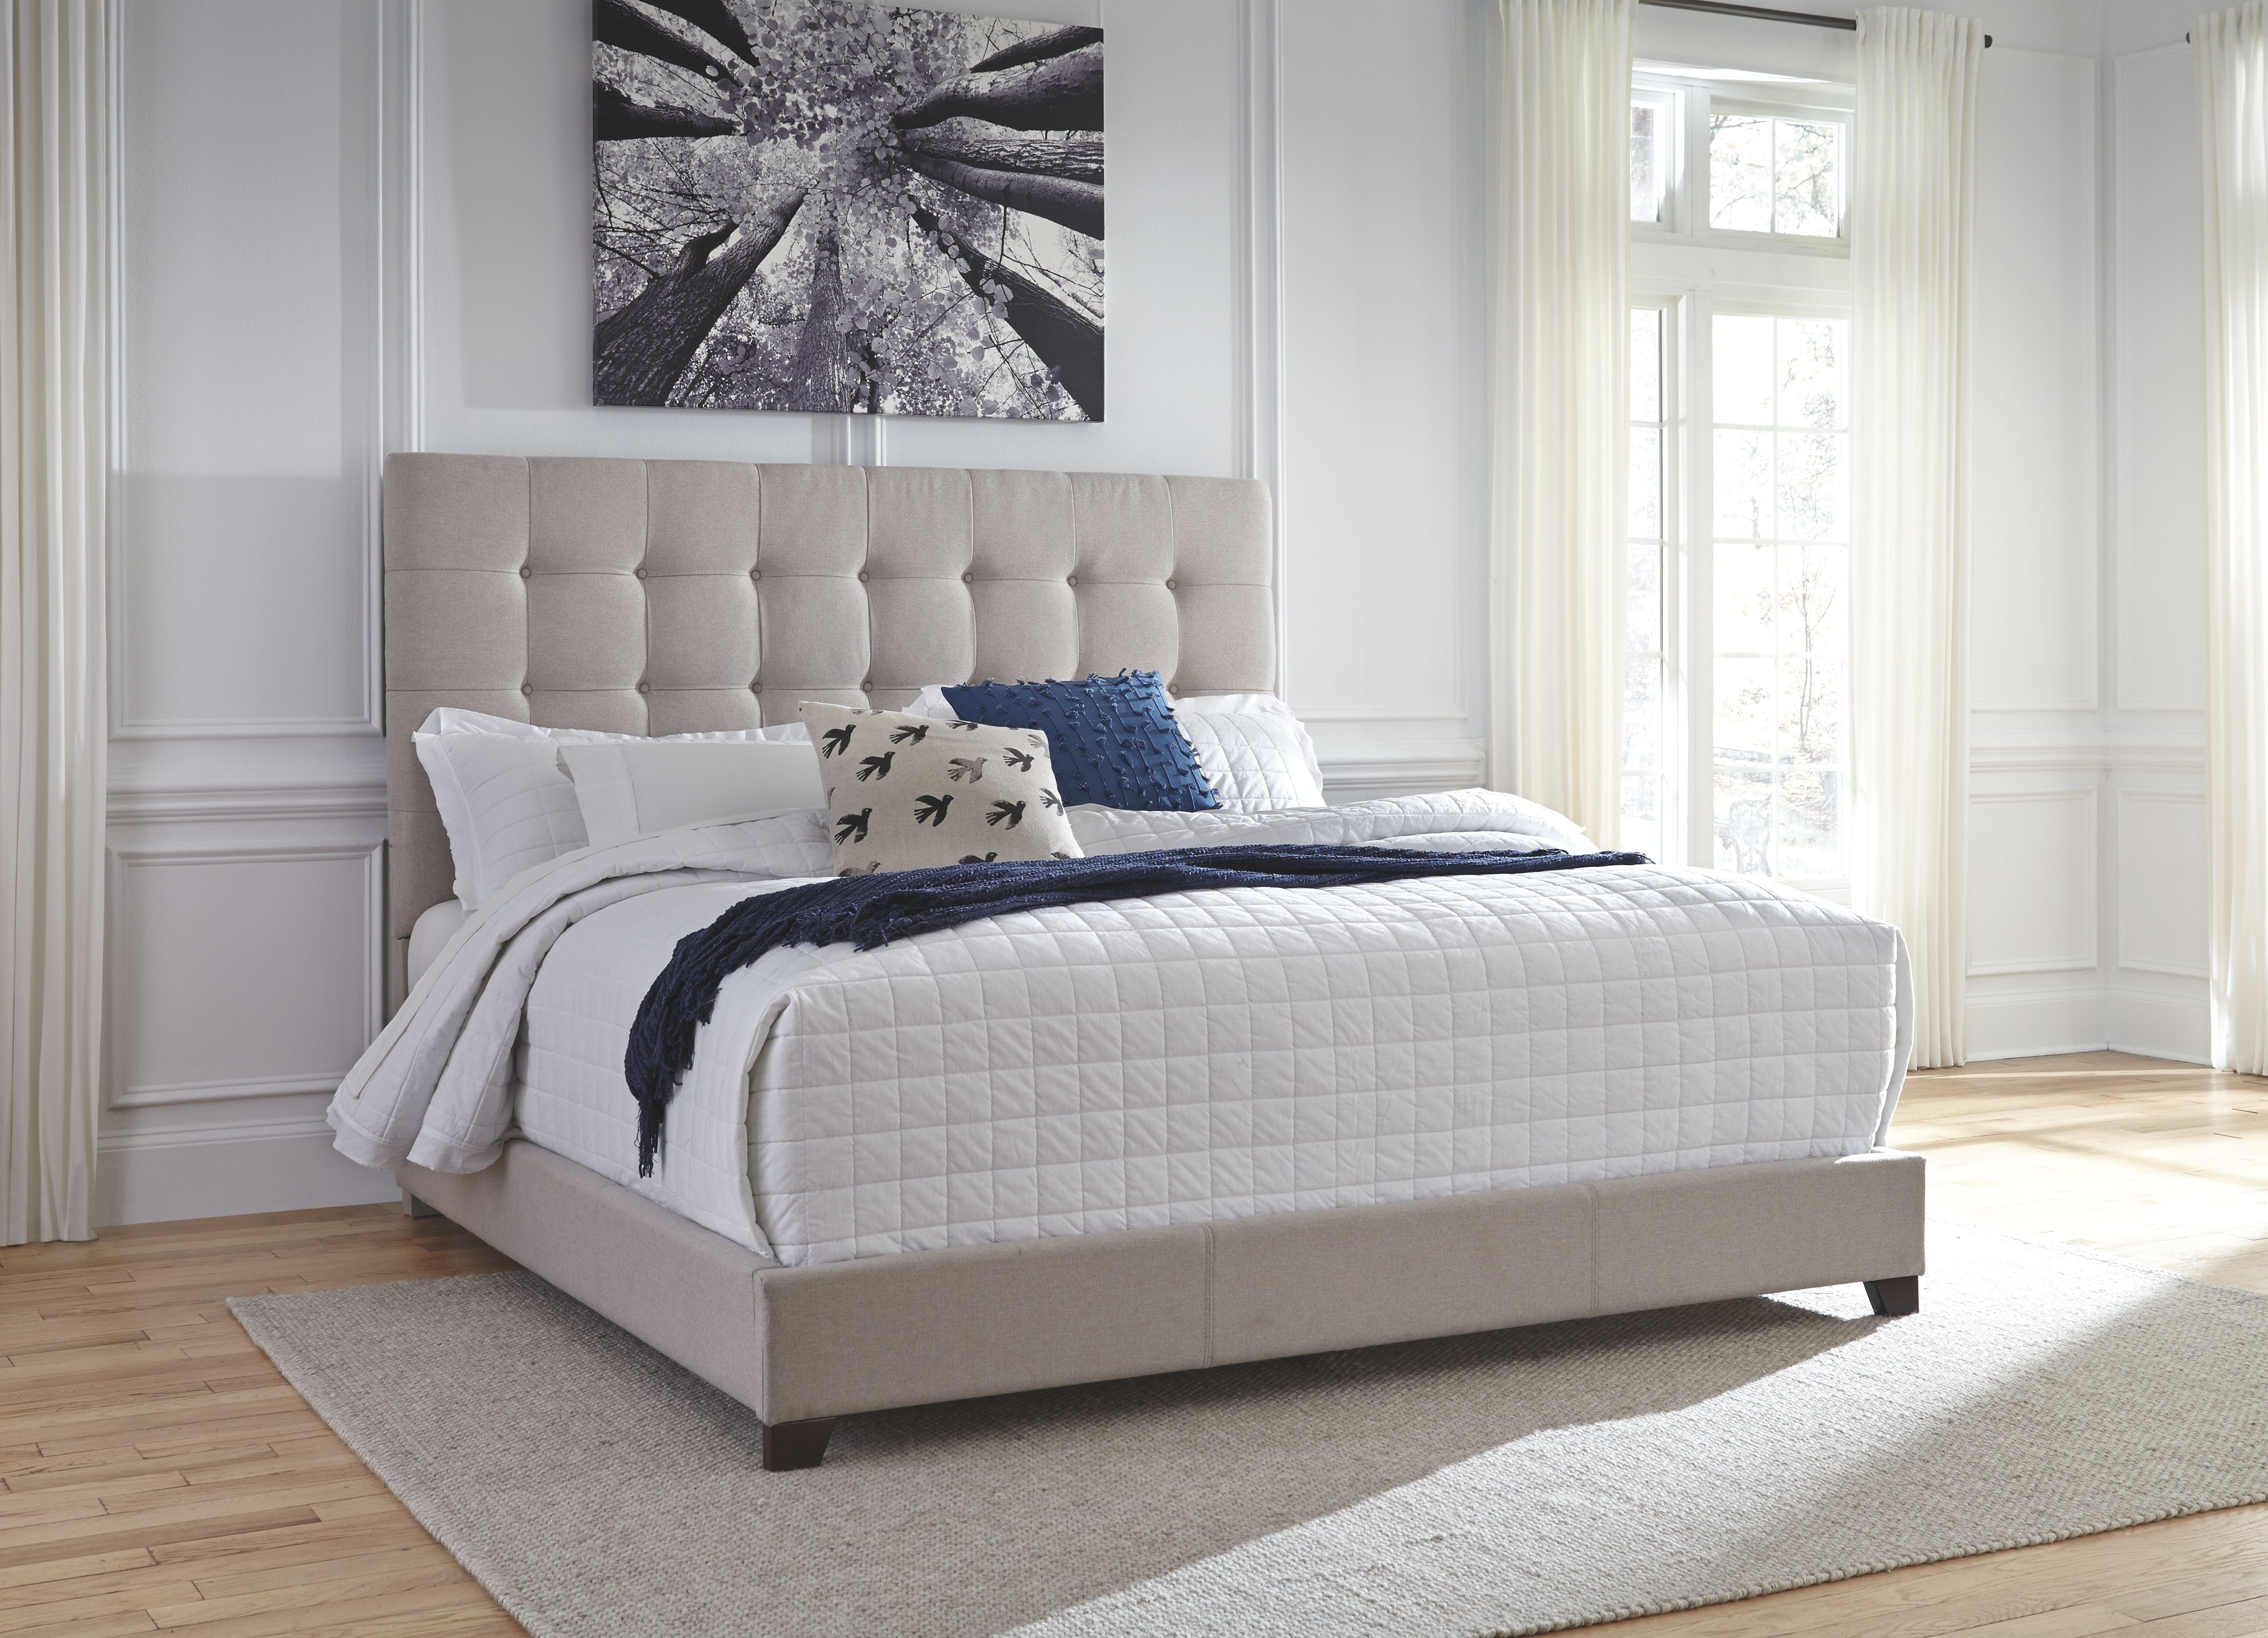 The Signature Design By Ashley Bedroom Queen Upholstered Bed Is Available  In The Freehold, NY Area From Tip Top Furniture. Queen Upholstered Bed  B130 581 ...